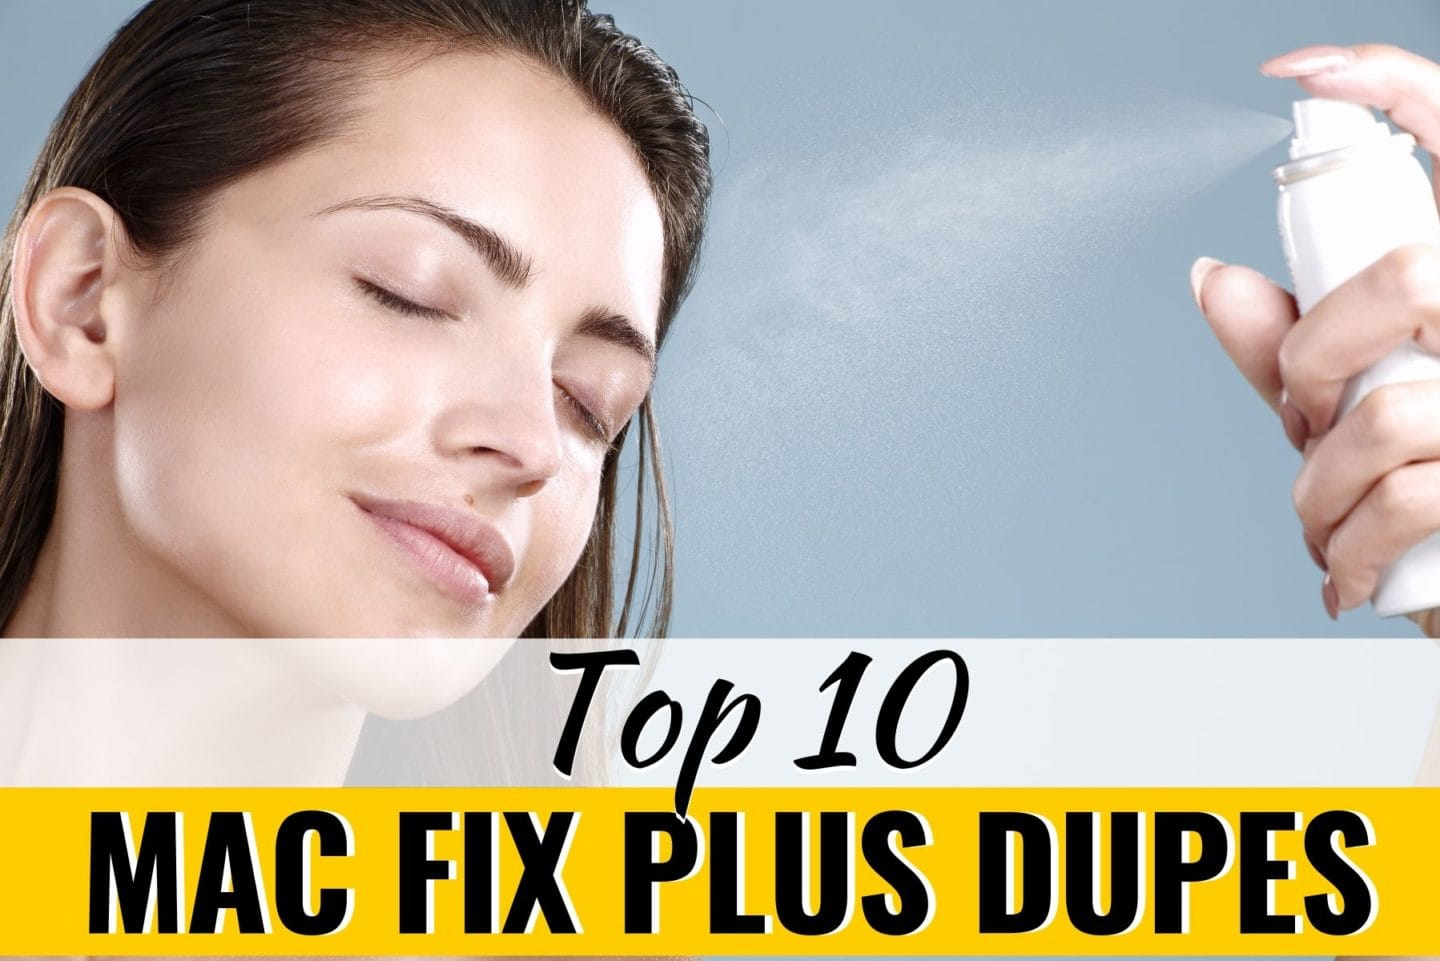 10 Best Mac Fix Plus Dupes: These Setting Sprays Rival The Real Deal